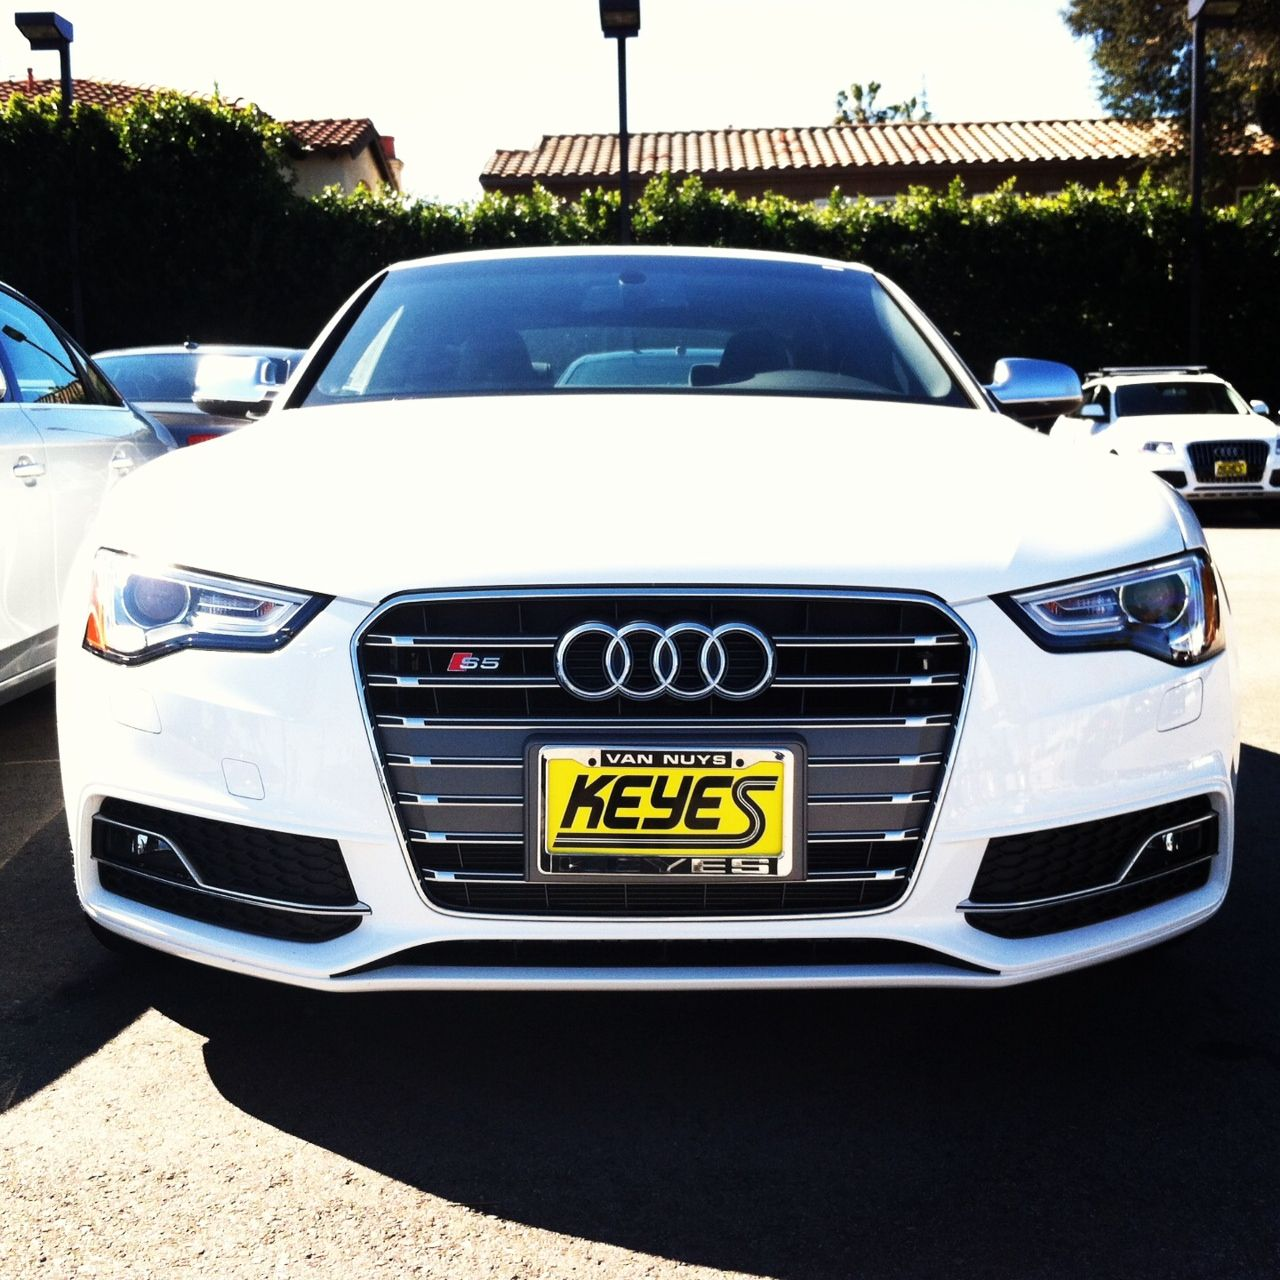 The New Face Of Aggression = 2013 Audi S5. @keyesaudi